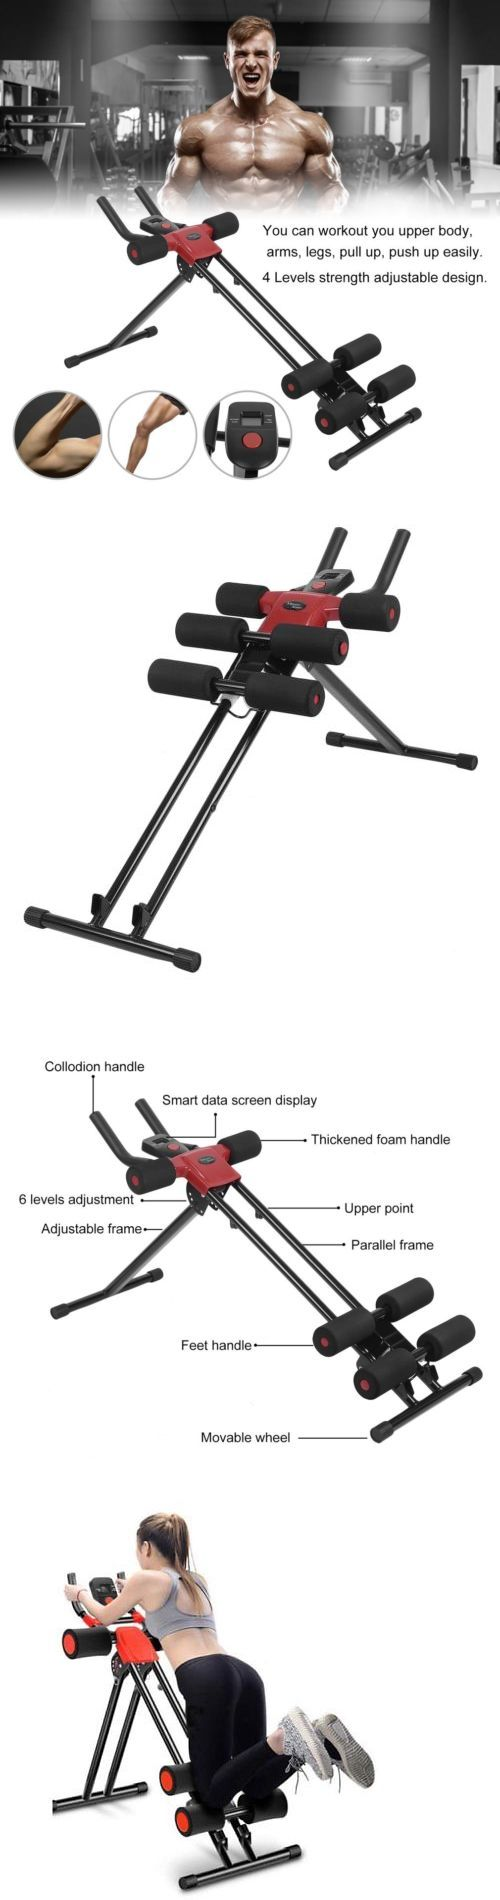 Abdominal Exercisers 15274: Ab Cruncher Abdominal Trainer Glider Fitness Machine Muscle Exercise Equipment T -> BUY IT NOW ONLY: $49.28 on eBay!